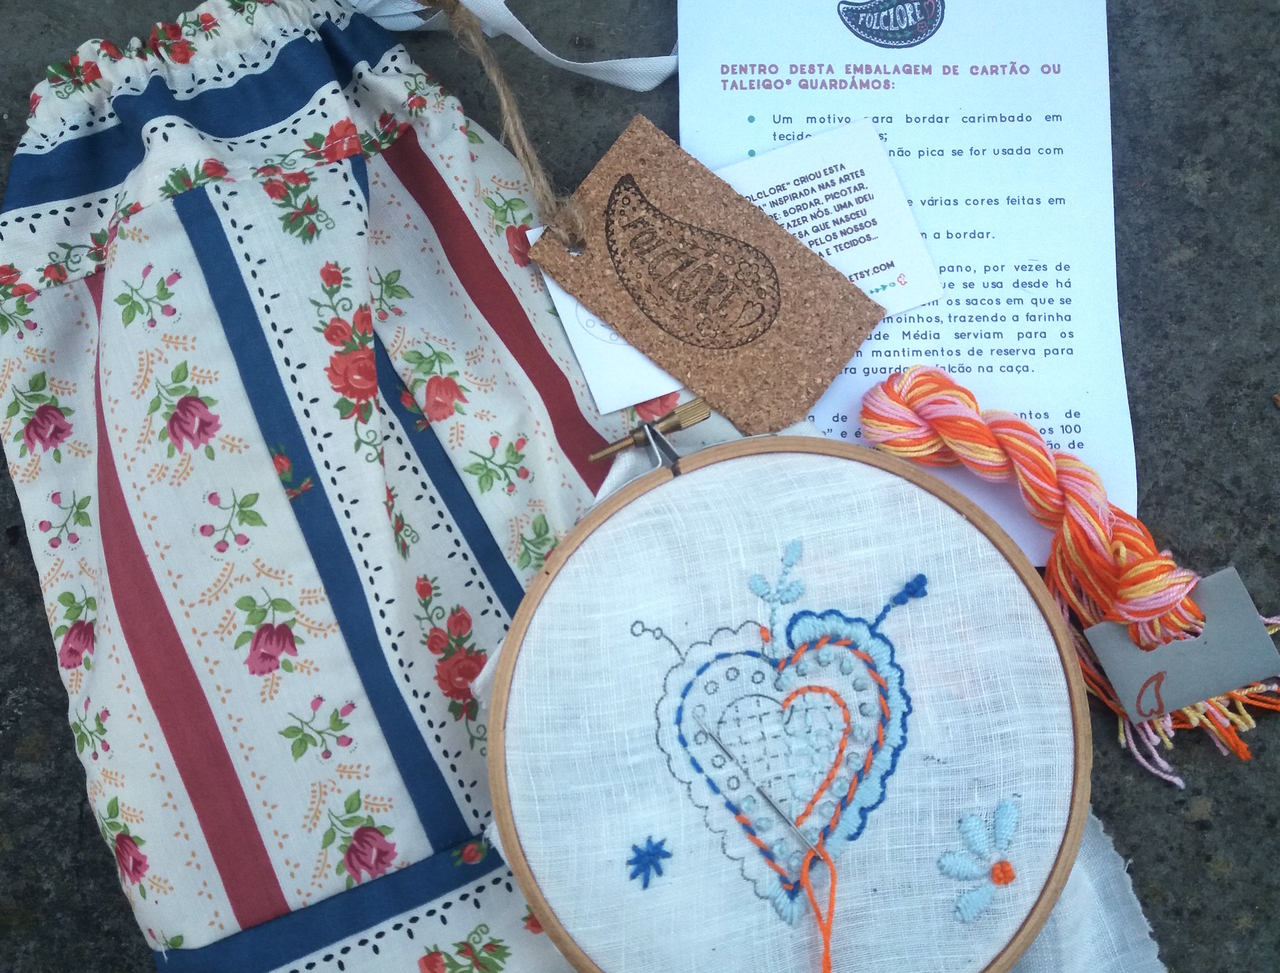 beginner embroidery kit, learn to embroider with embroidery hoop, Viana heart